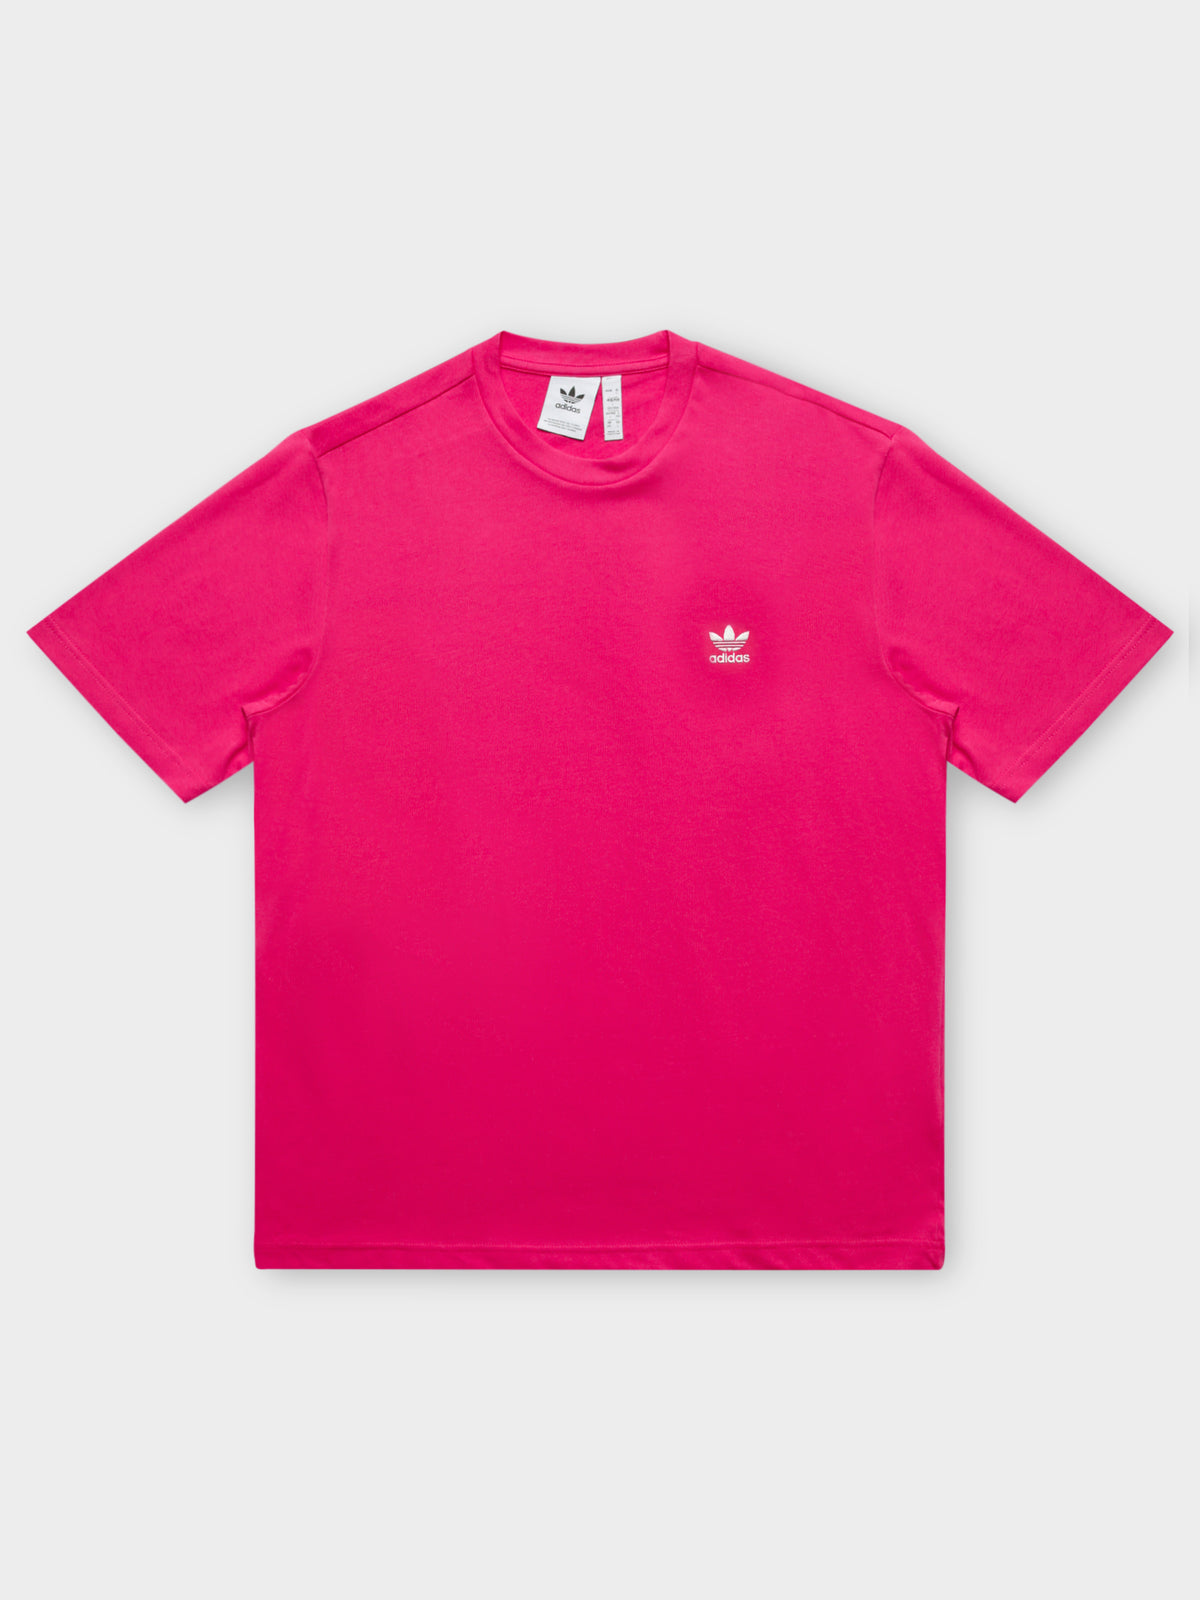 Originals Trefoil Boxy T-Shirt in Power Pink